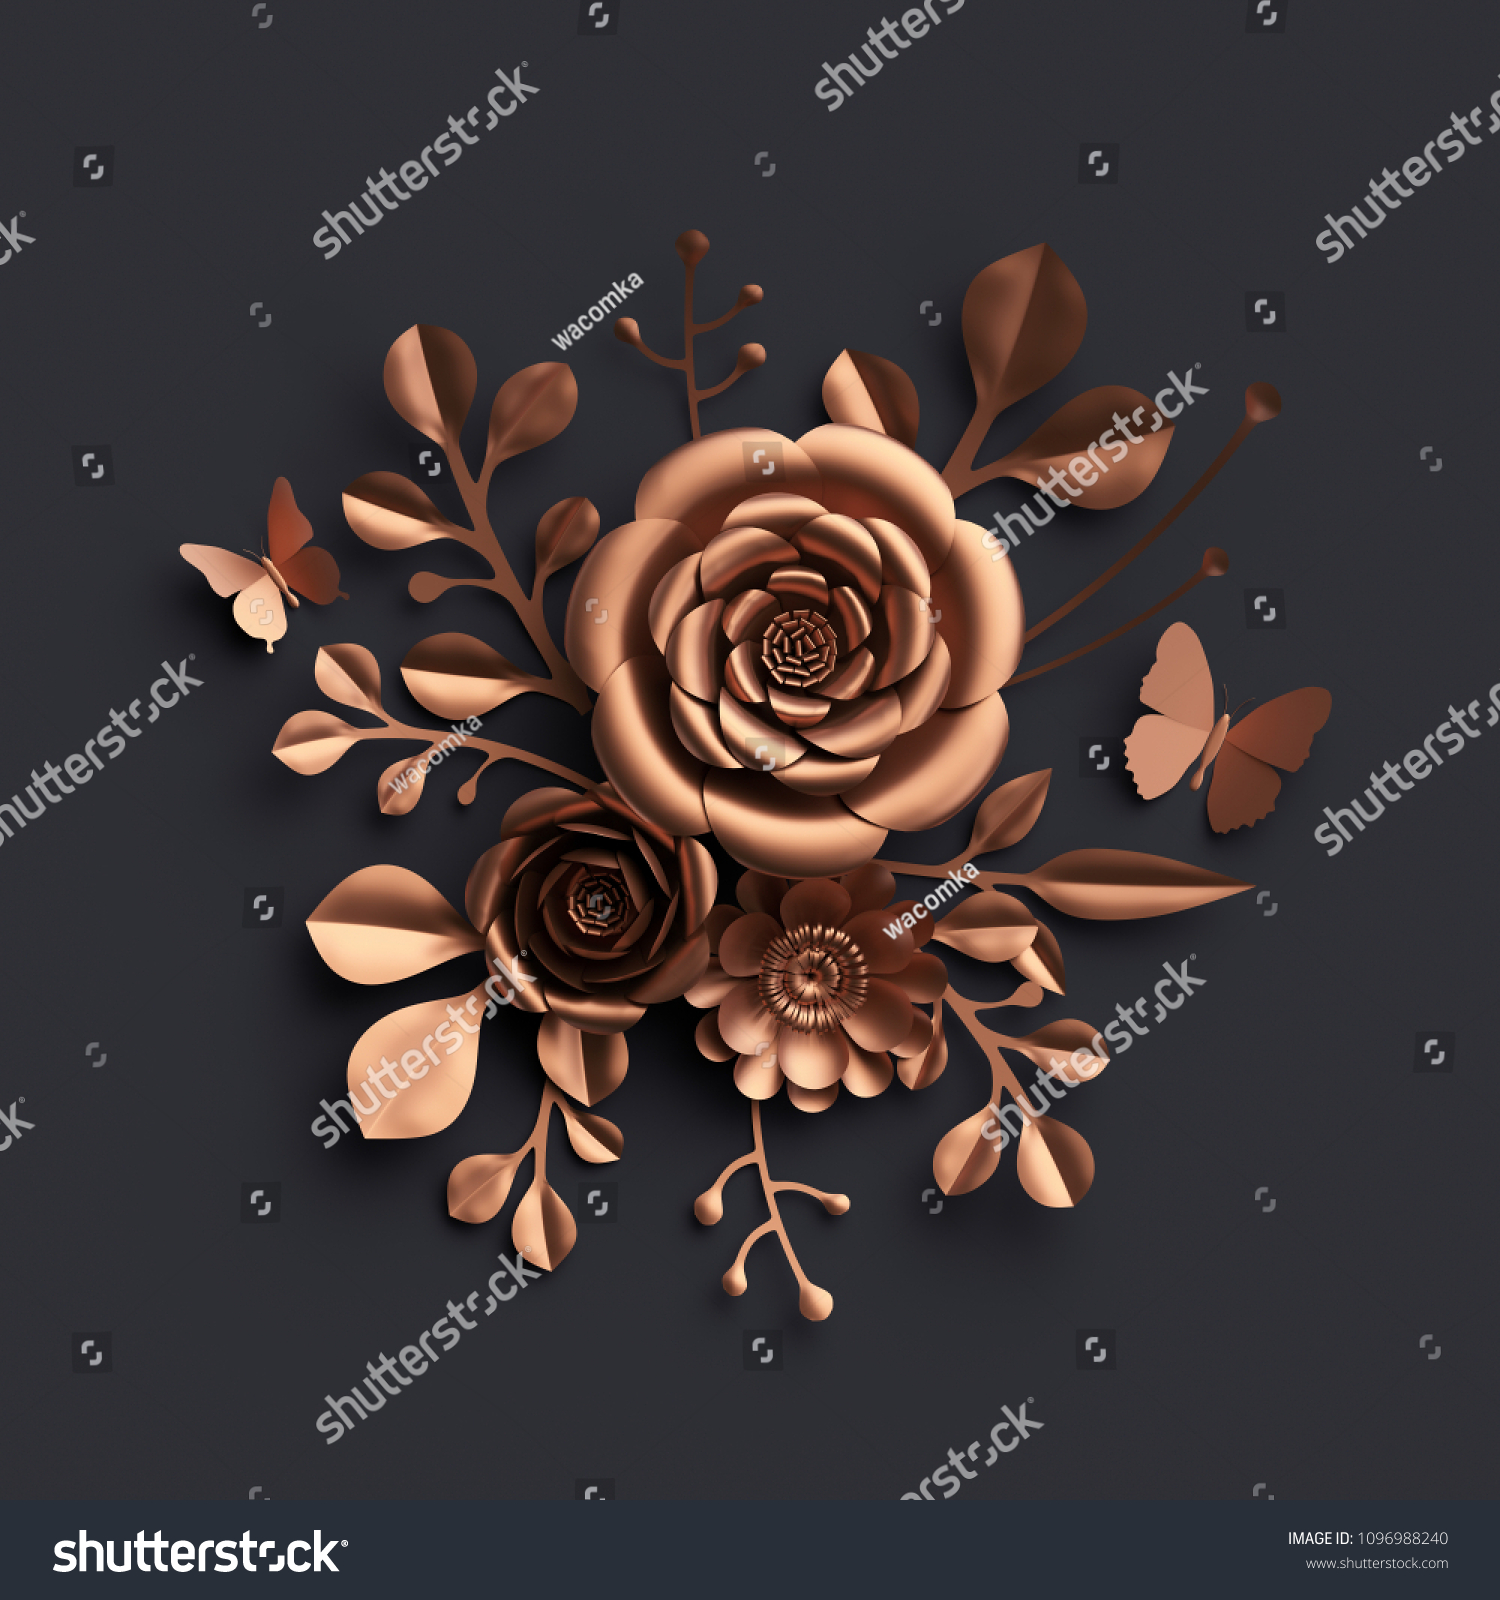 3 D Render Rose Gold Paper Flowers Stock Illustration 1096988240